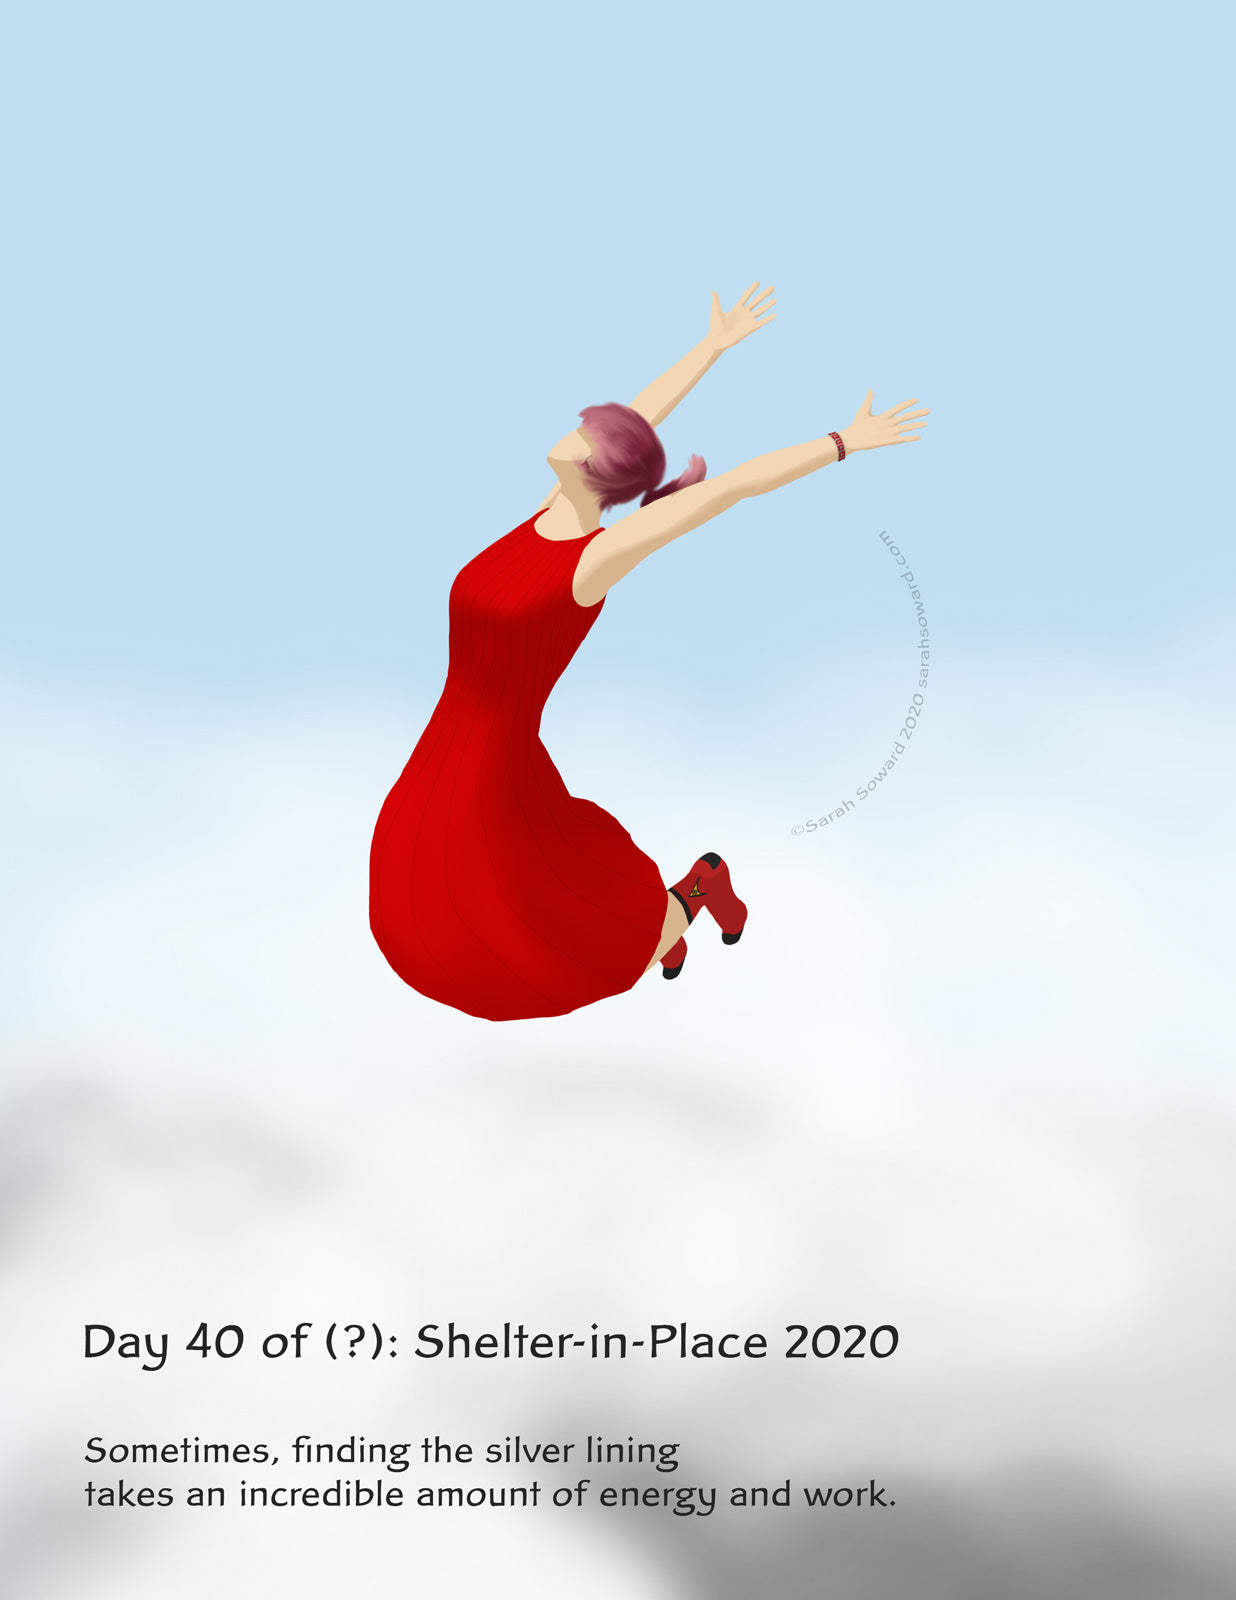 a woman wearing a red dress and star trek socks is leaping above clouds. The text on the image says, The text on the image reads  Sometimes, finding the silver lining  takes an incredible amount of energy and work.